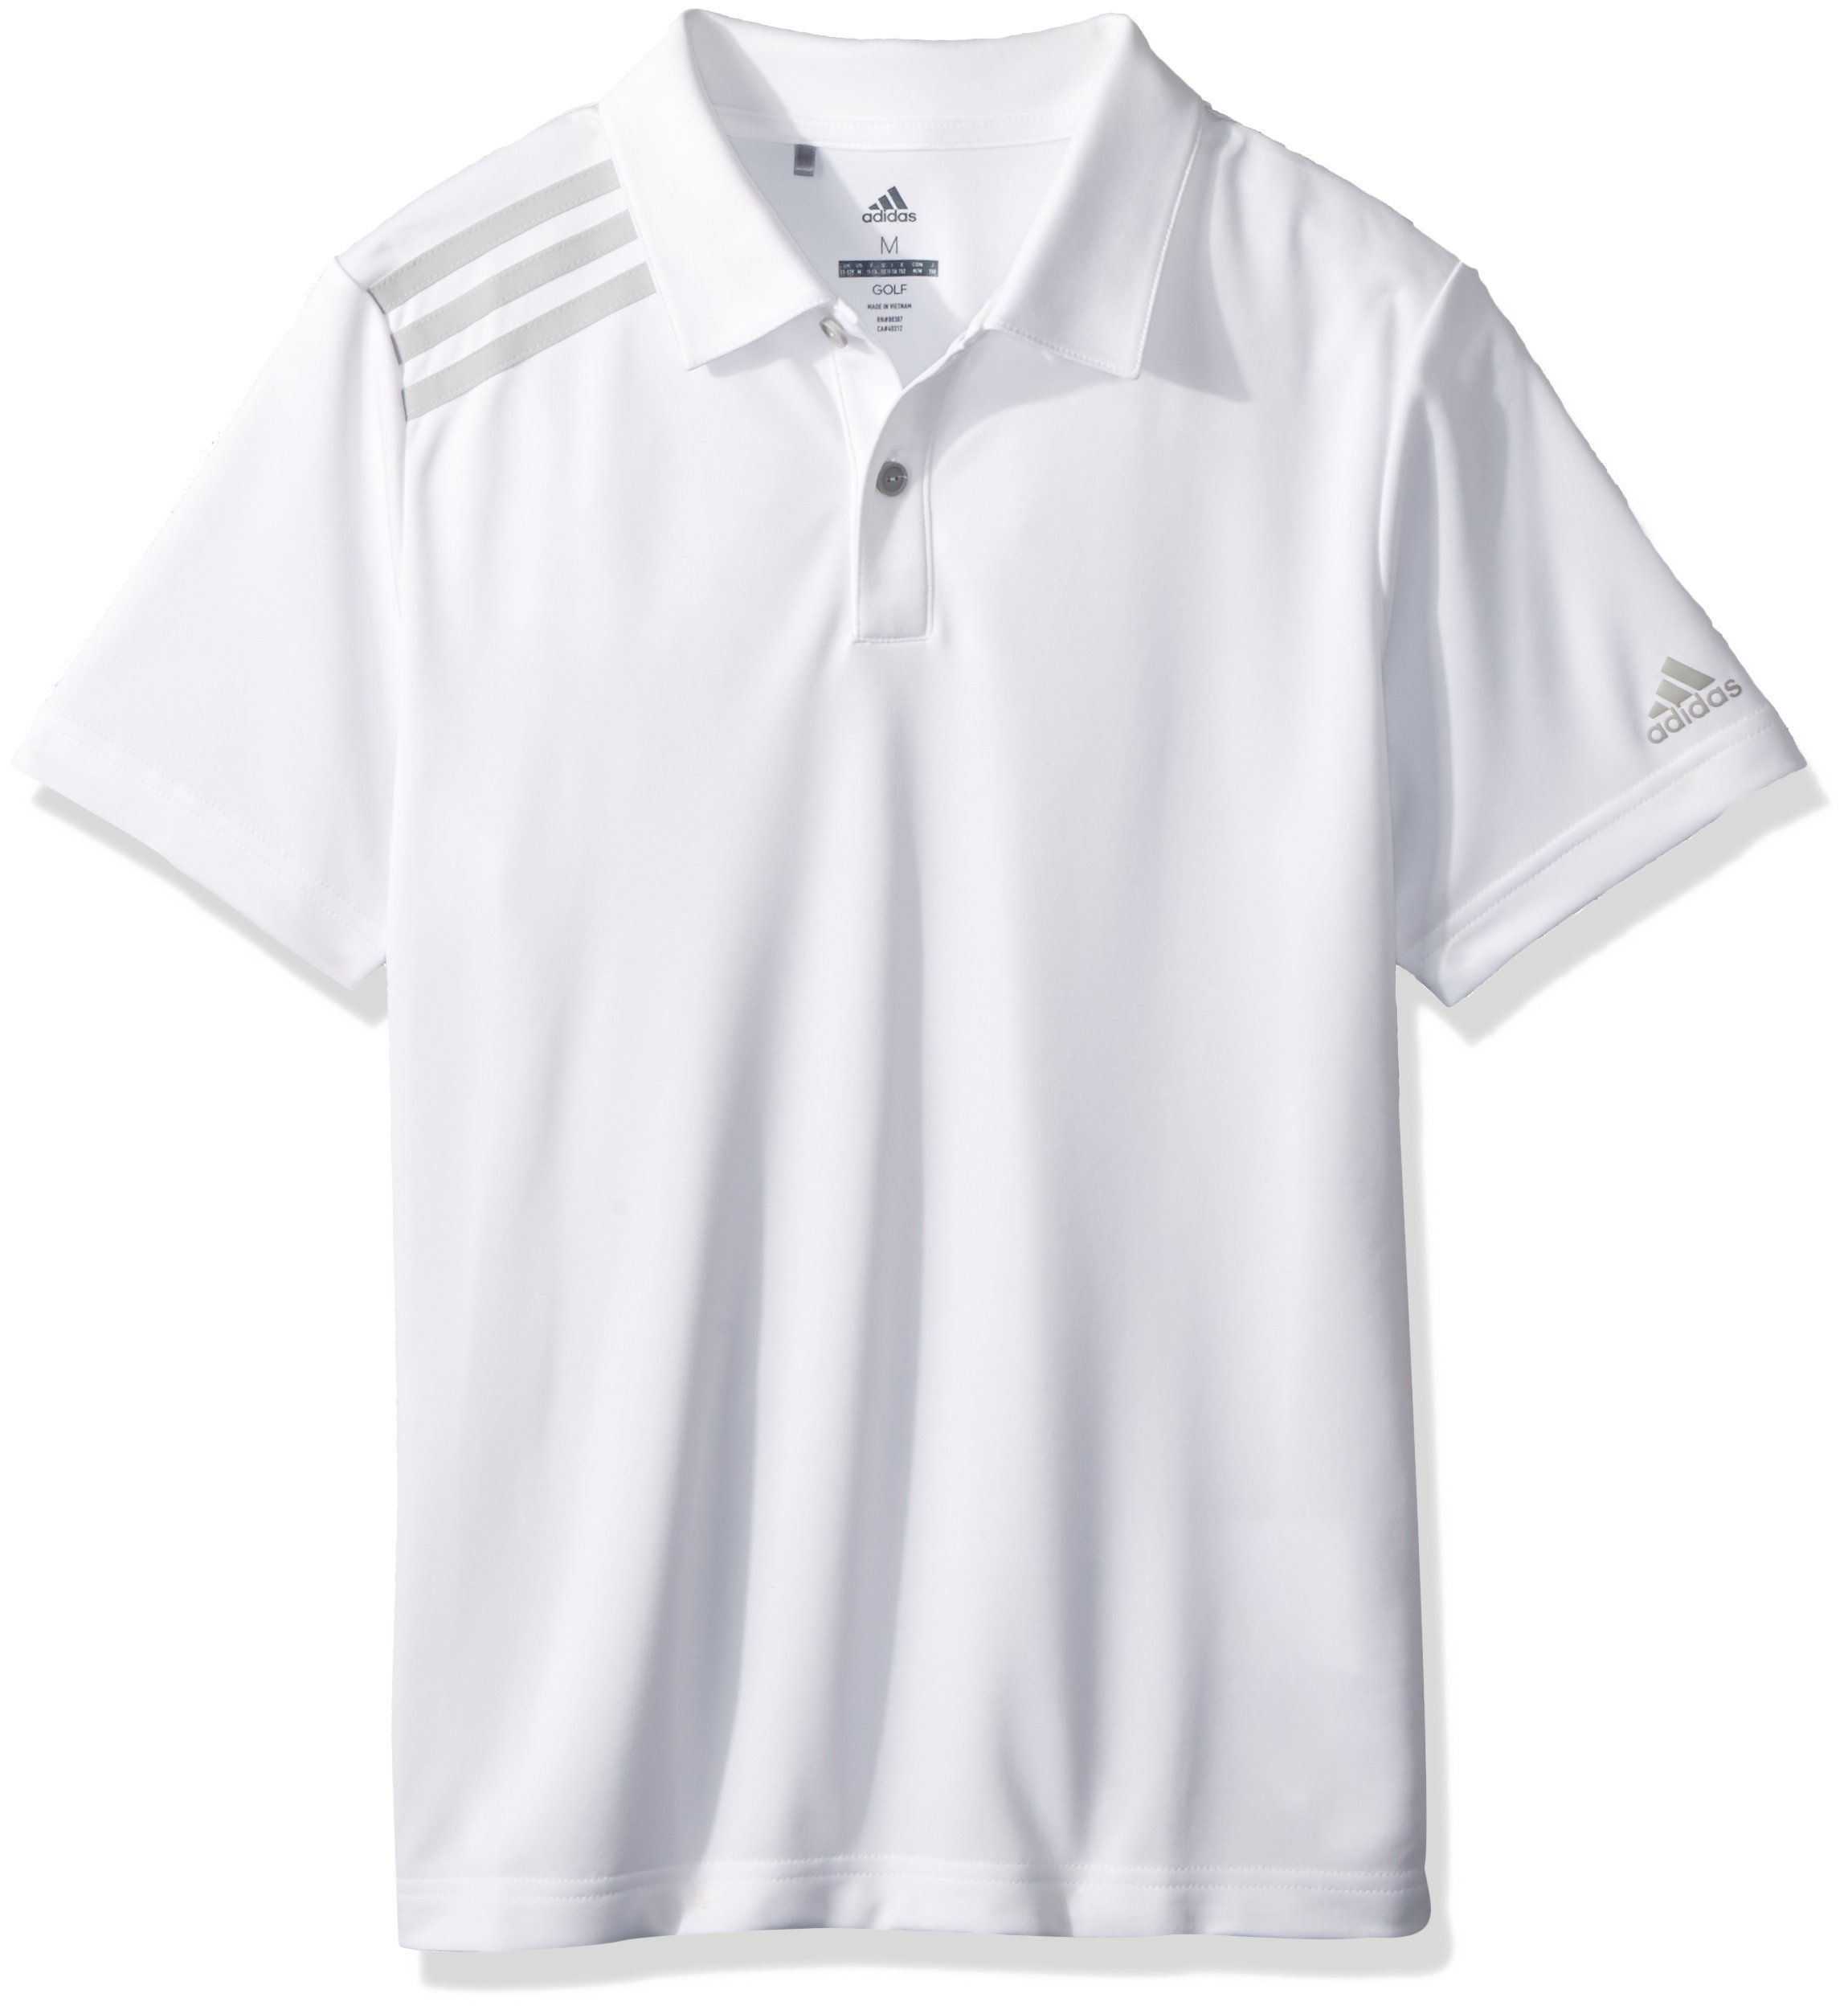 adidas Golf 3-Stripe Tournament Polo, White, Medium by adidas